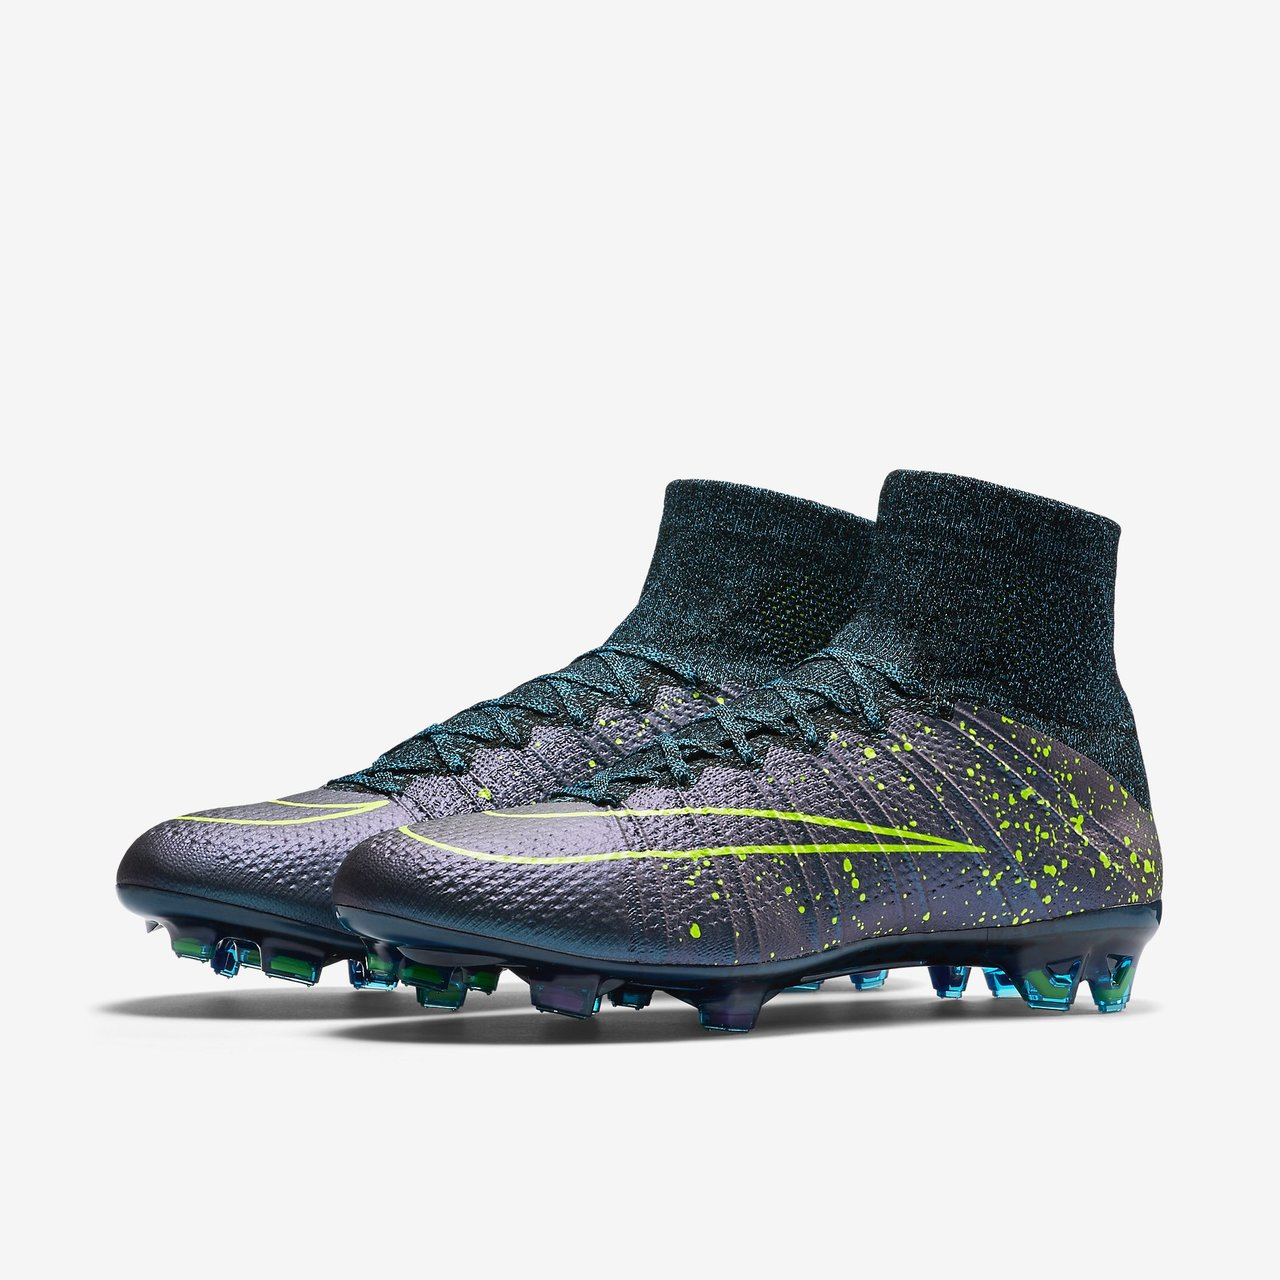 reputable site b7a30 4ca35 Nike Mercurial Superfly FG - Electro Flare Pack - Squadron ...